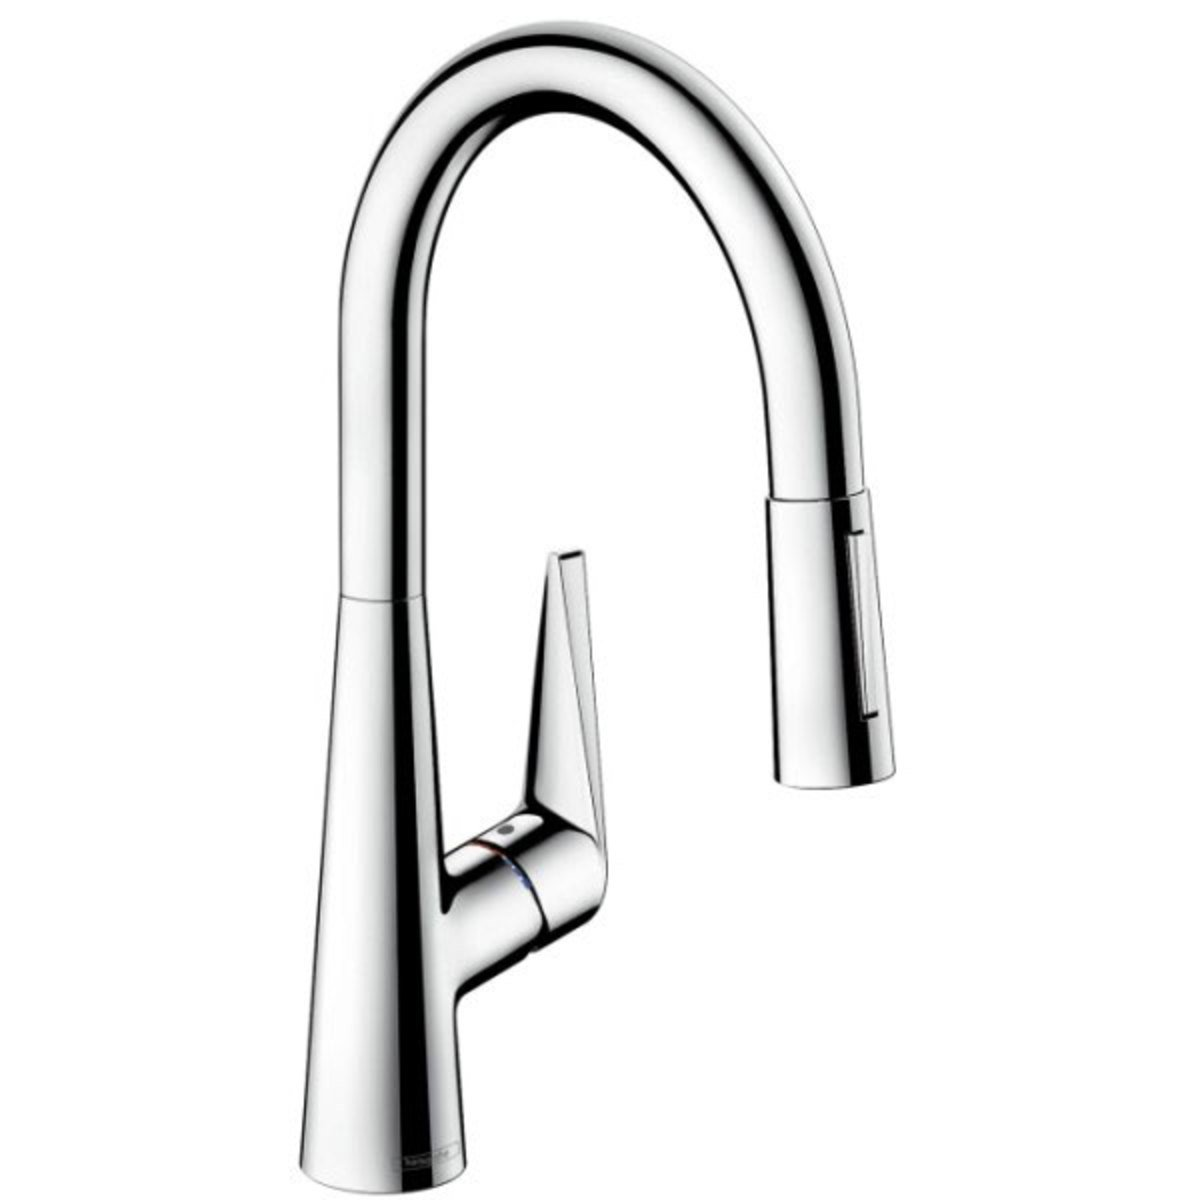 hansgrohe talis s robinet de cuisine 200 avec douchette extractible look inox 72813800. Black Bedroom Furniture Sets. Home Design Ideas